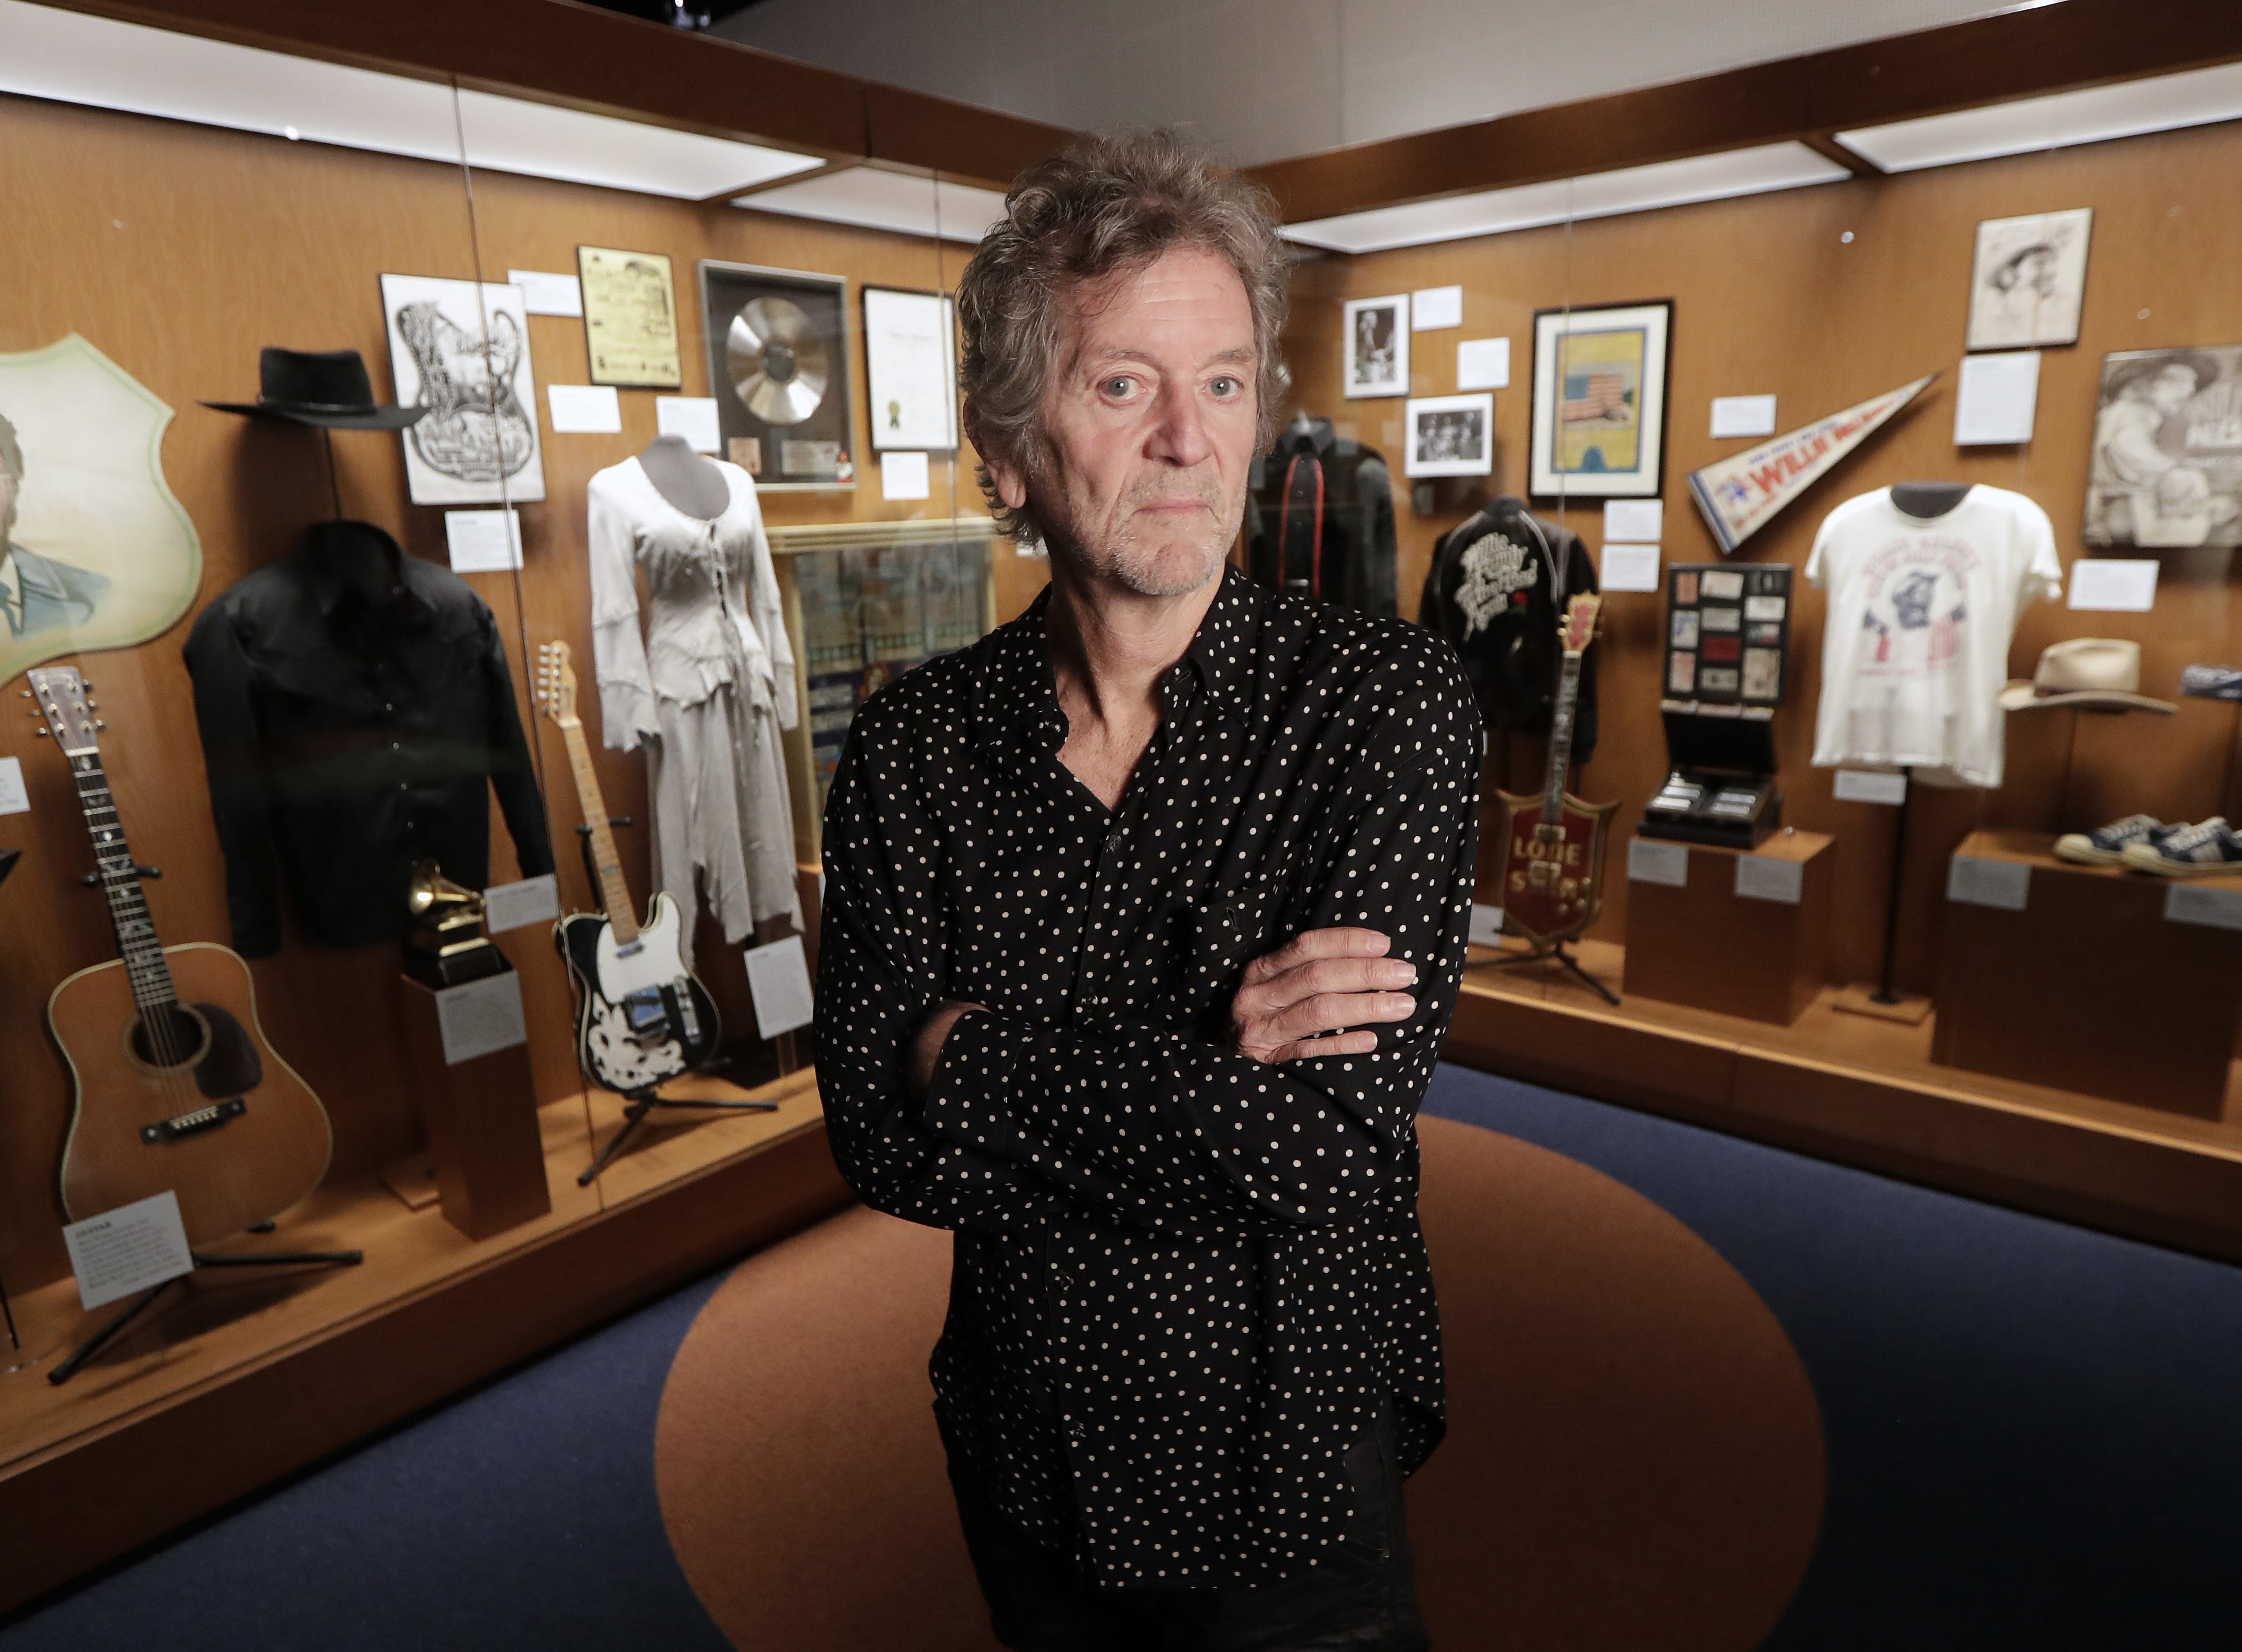 In this May 22, 2018, photo, Rodney Crowell is shown at the Outlaws & Armadillos exhibit at the Country Music Hall of Fame and Museum in Nashville, Tennessee.